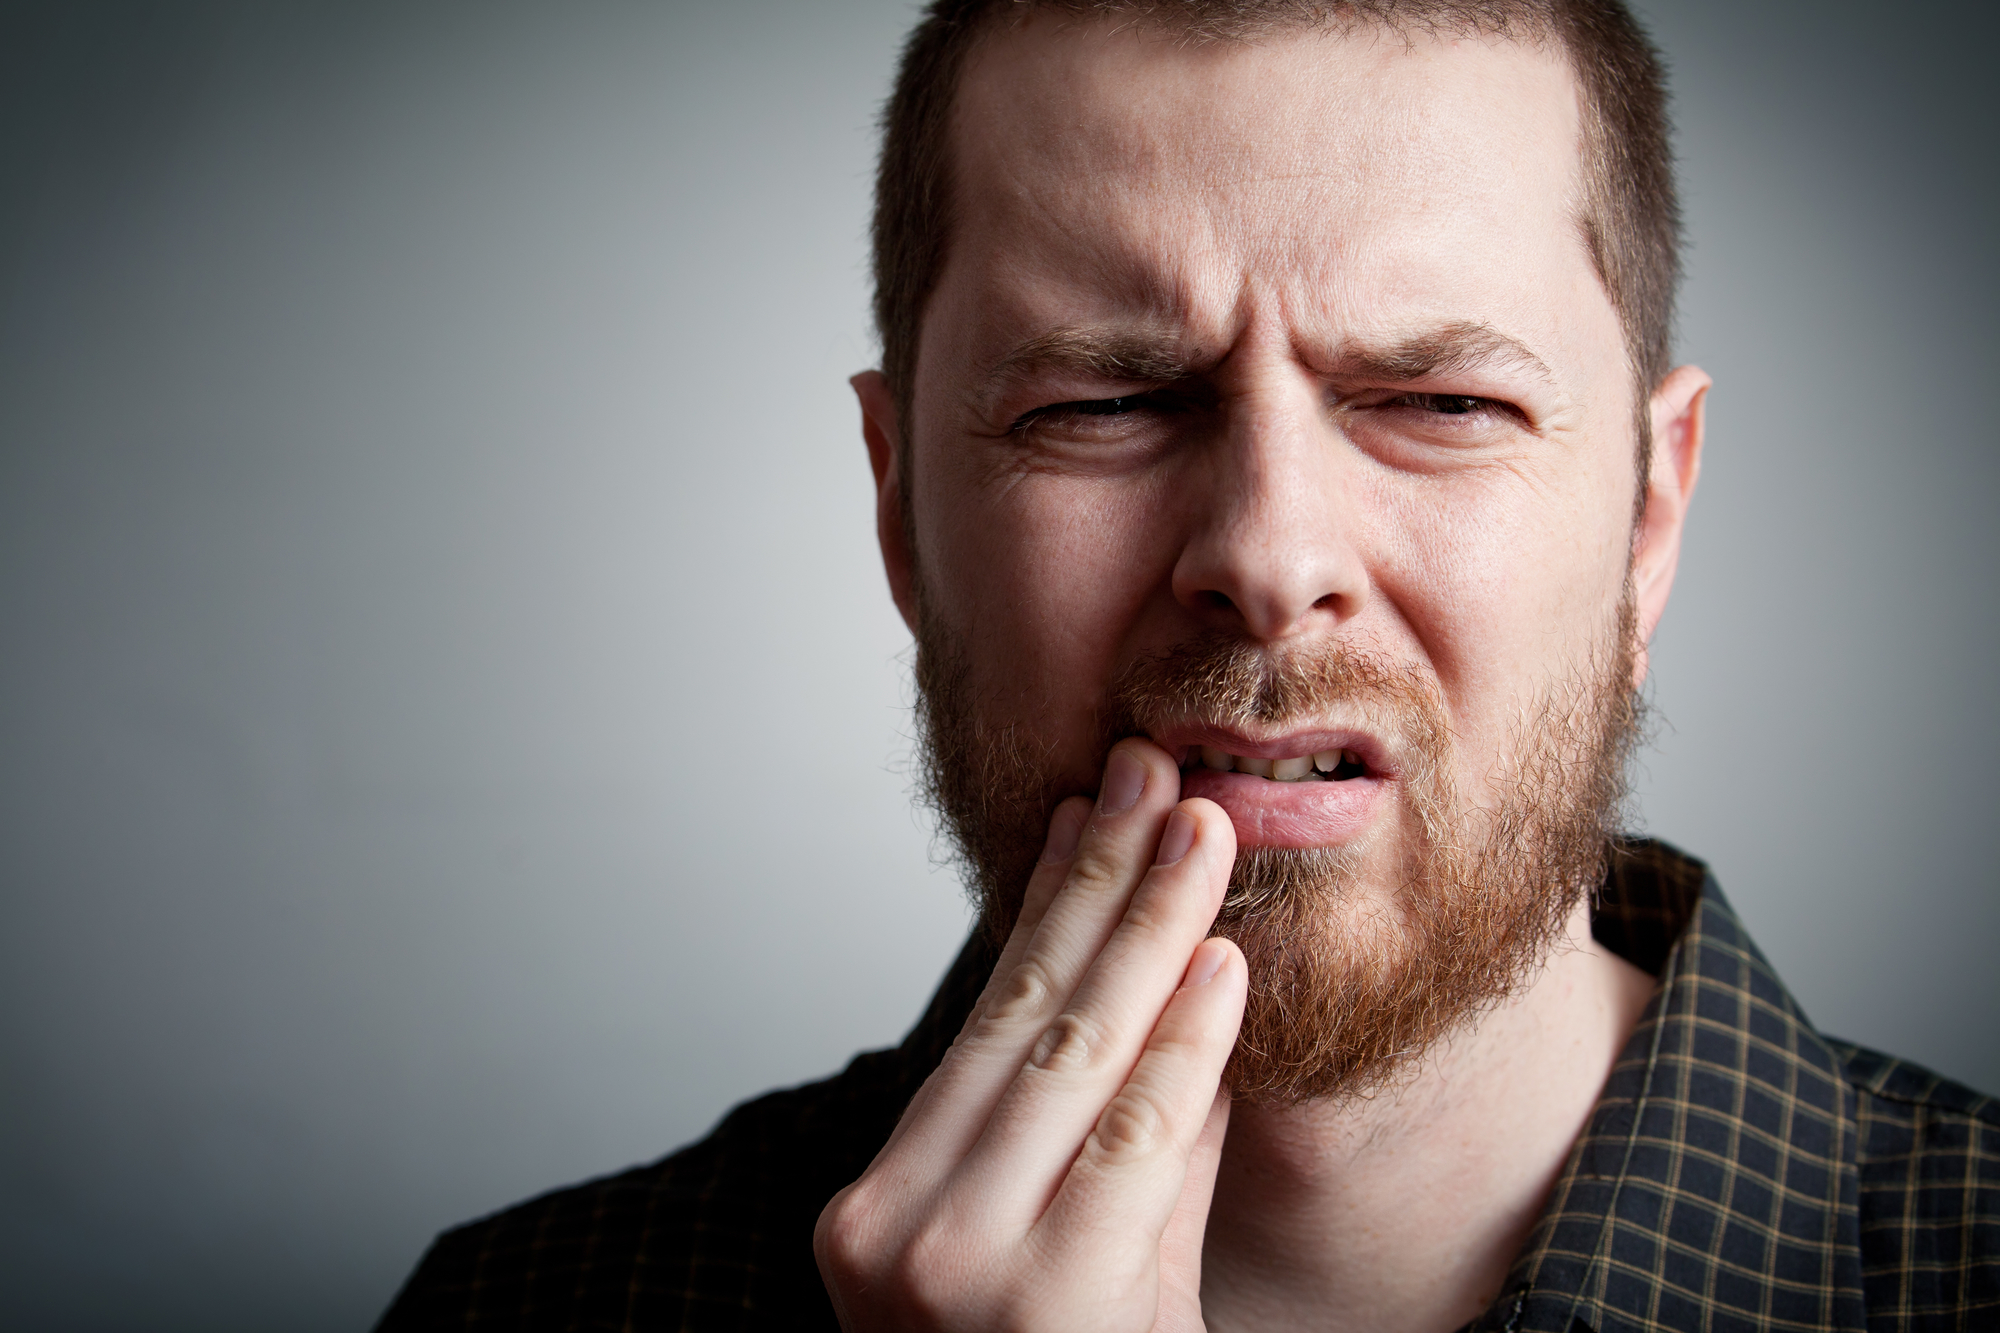 where is good information about tmj coral springs?